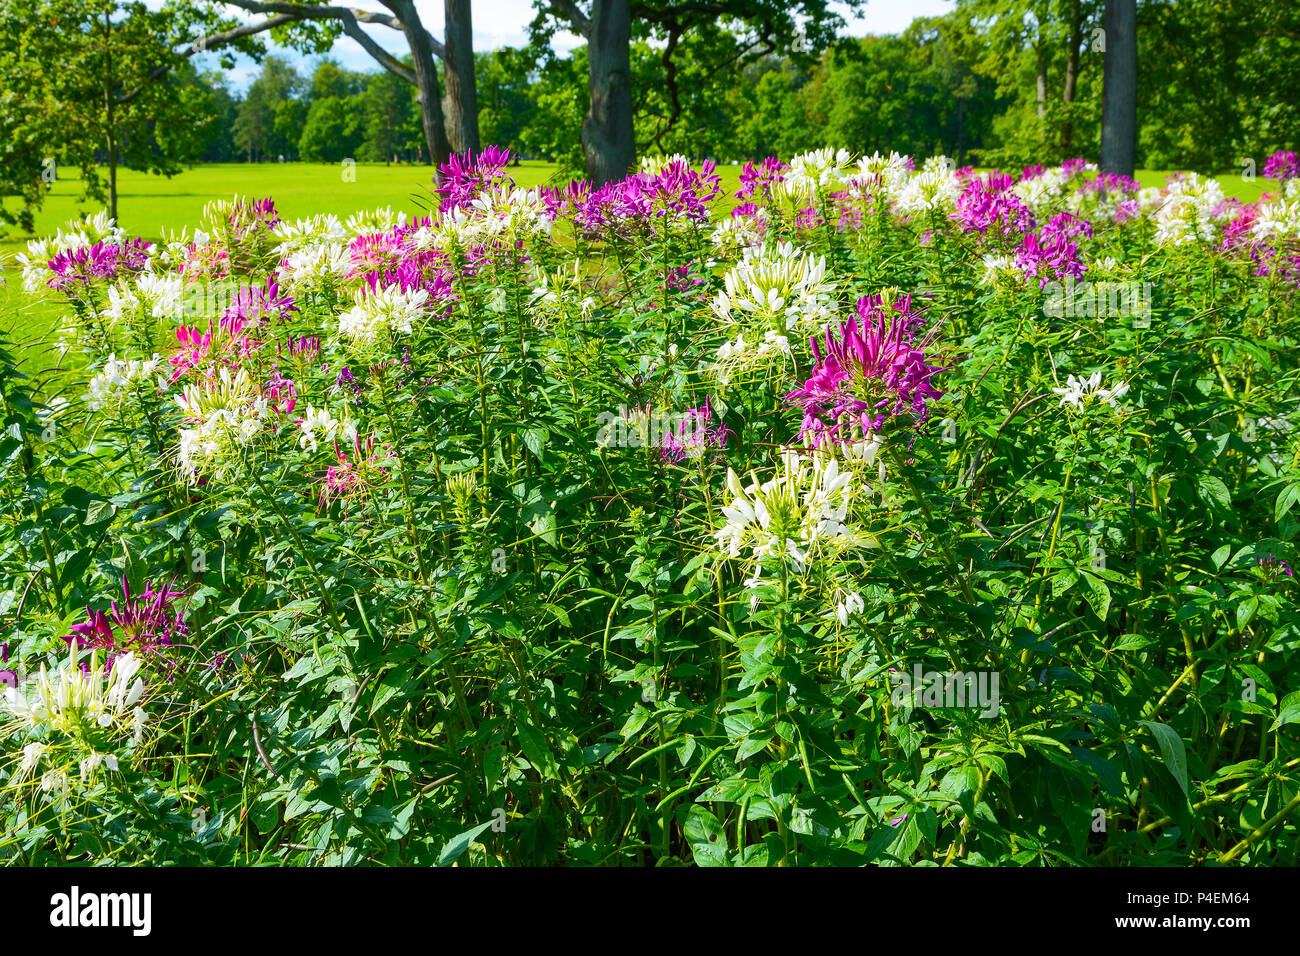 Curtain Of Flowering Bushes Of Cleoma In The Landscape Park Stock